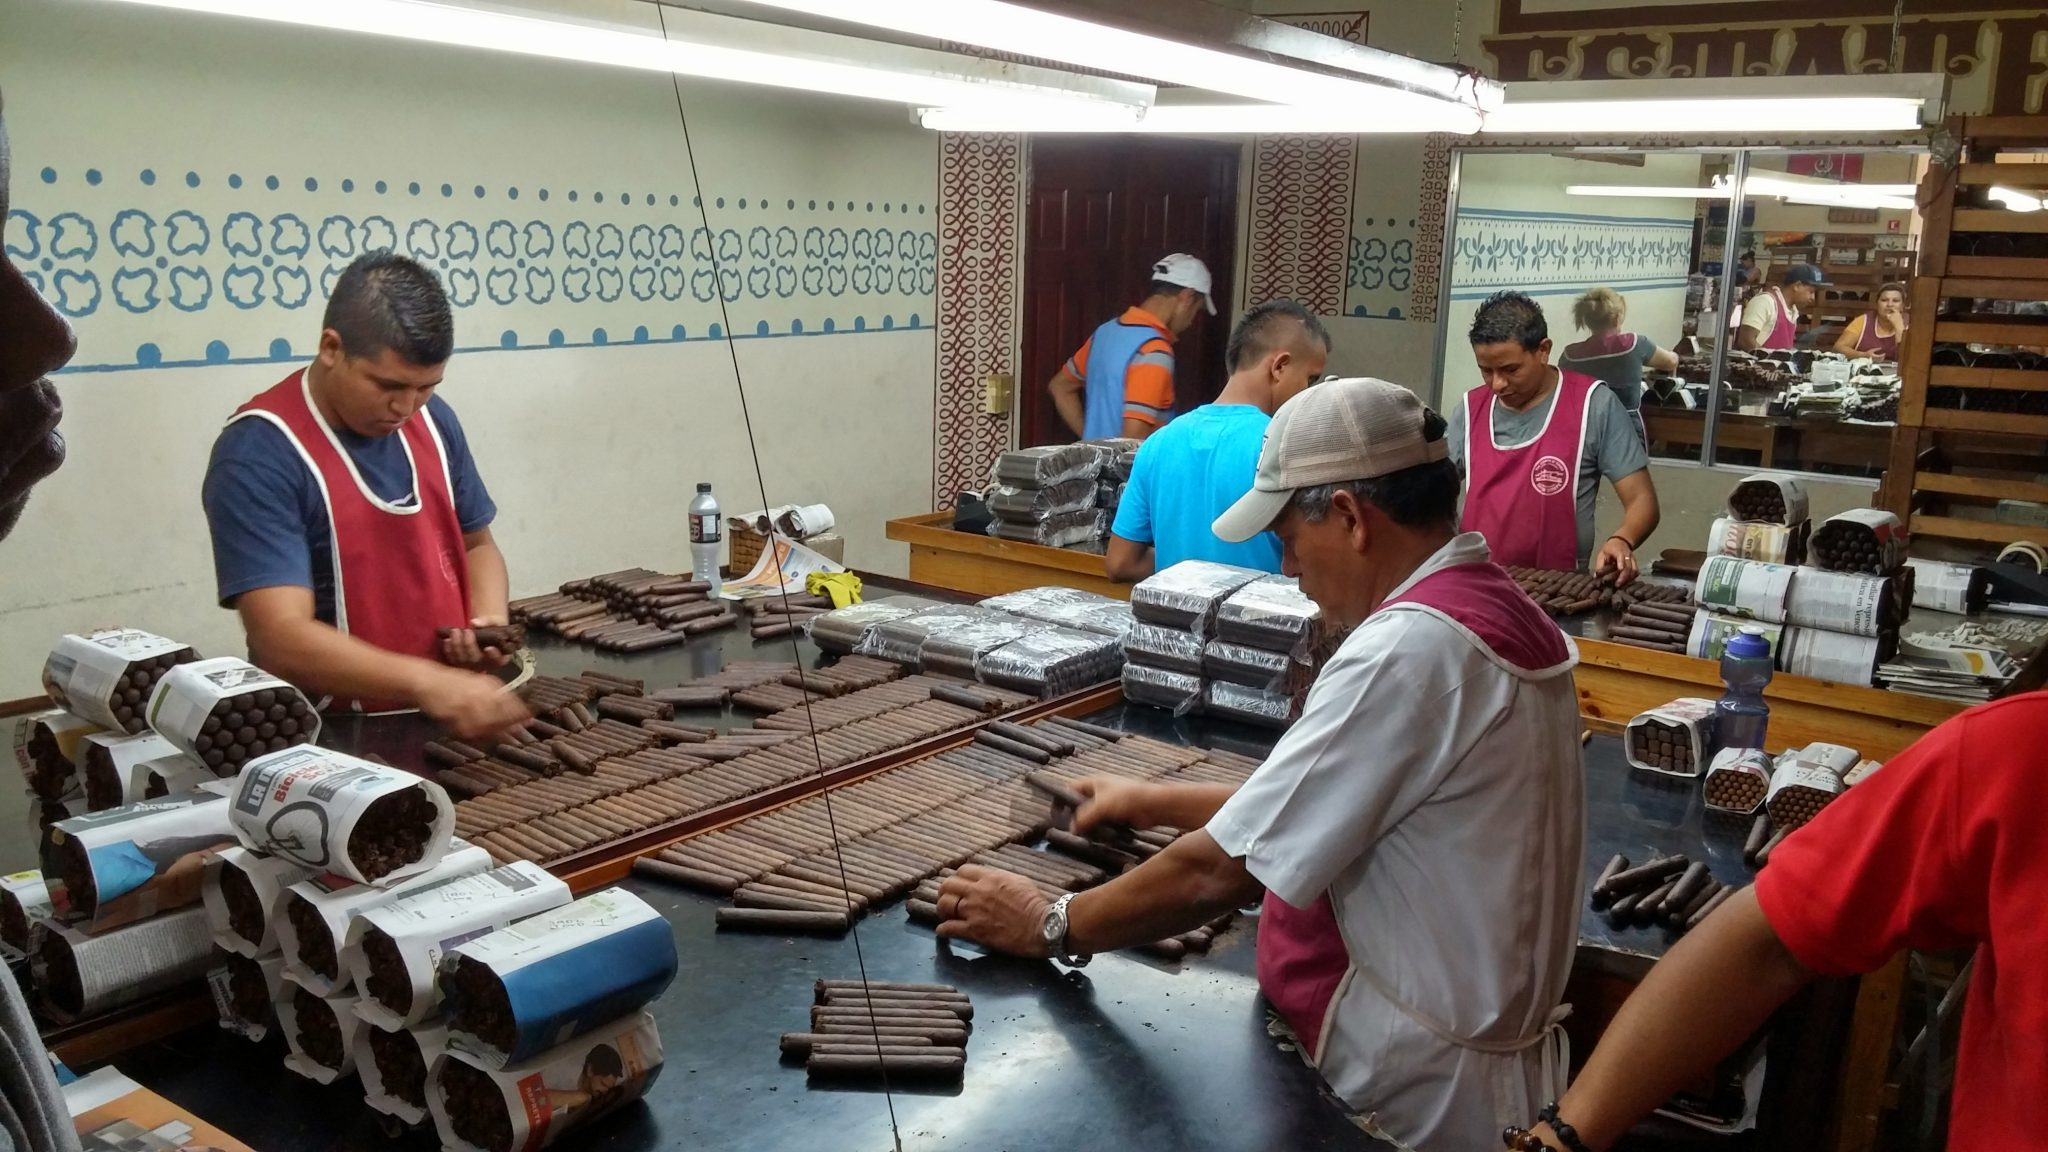 5 things you need to know about bundle cigars sorting cigars by color at Drew Estate